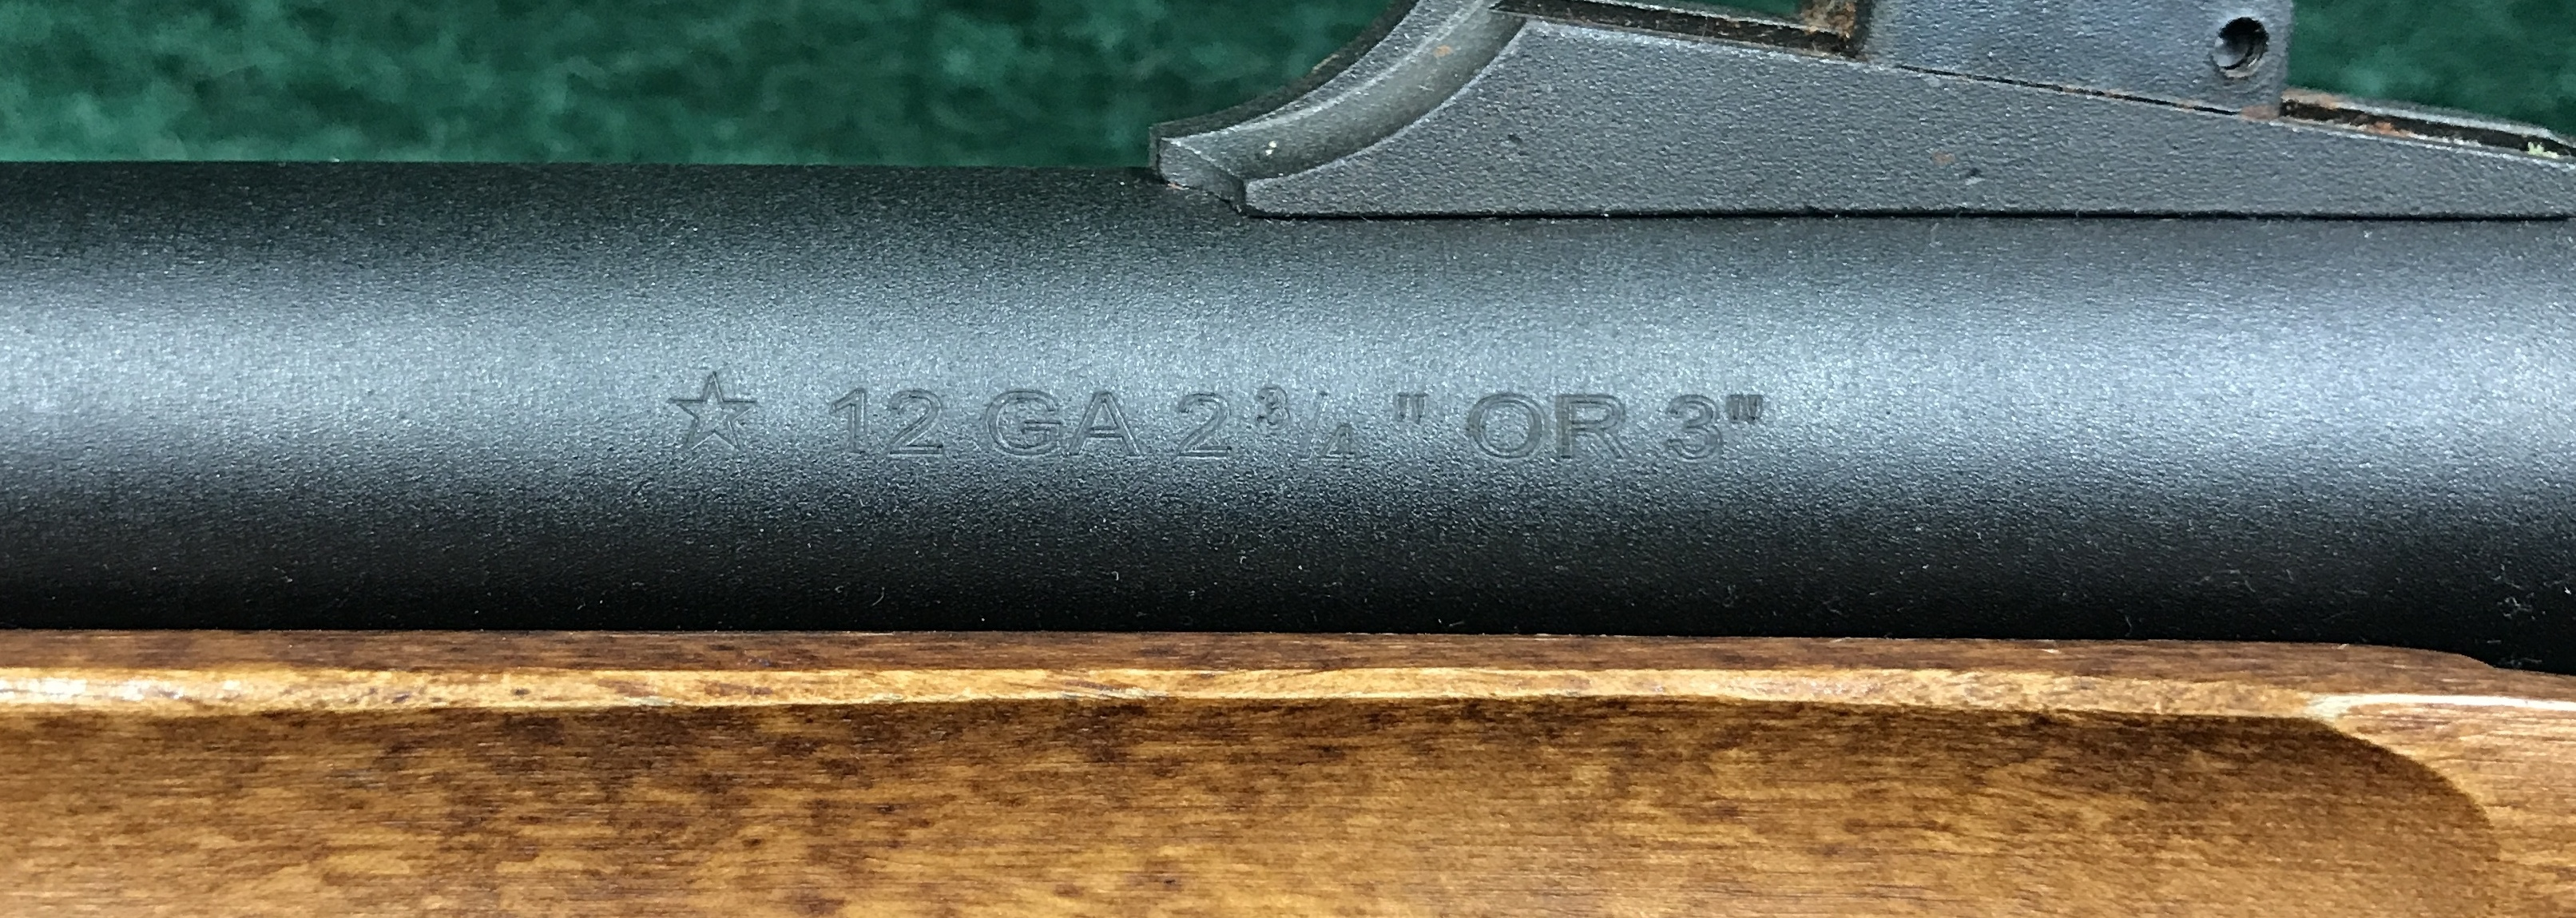 "REMINGTON 870 EXPRESS MAGNUM COMBO 20"" AND 28"" VEN-img-4"